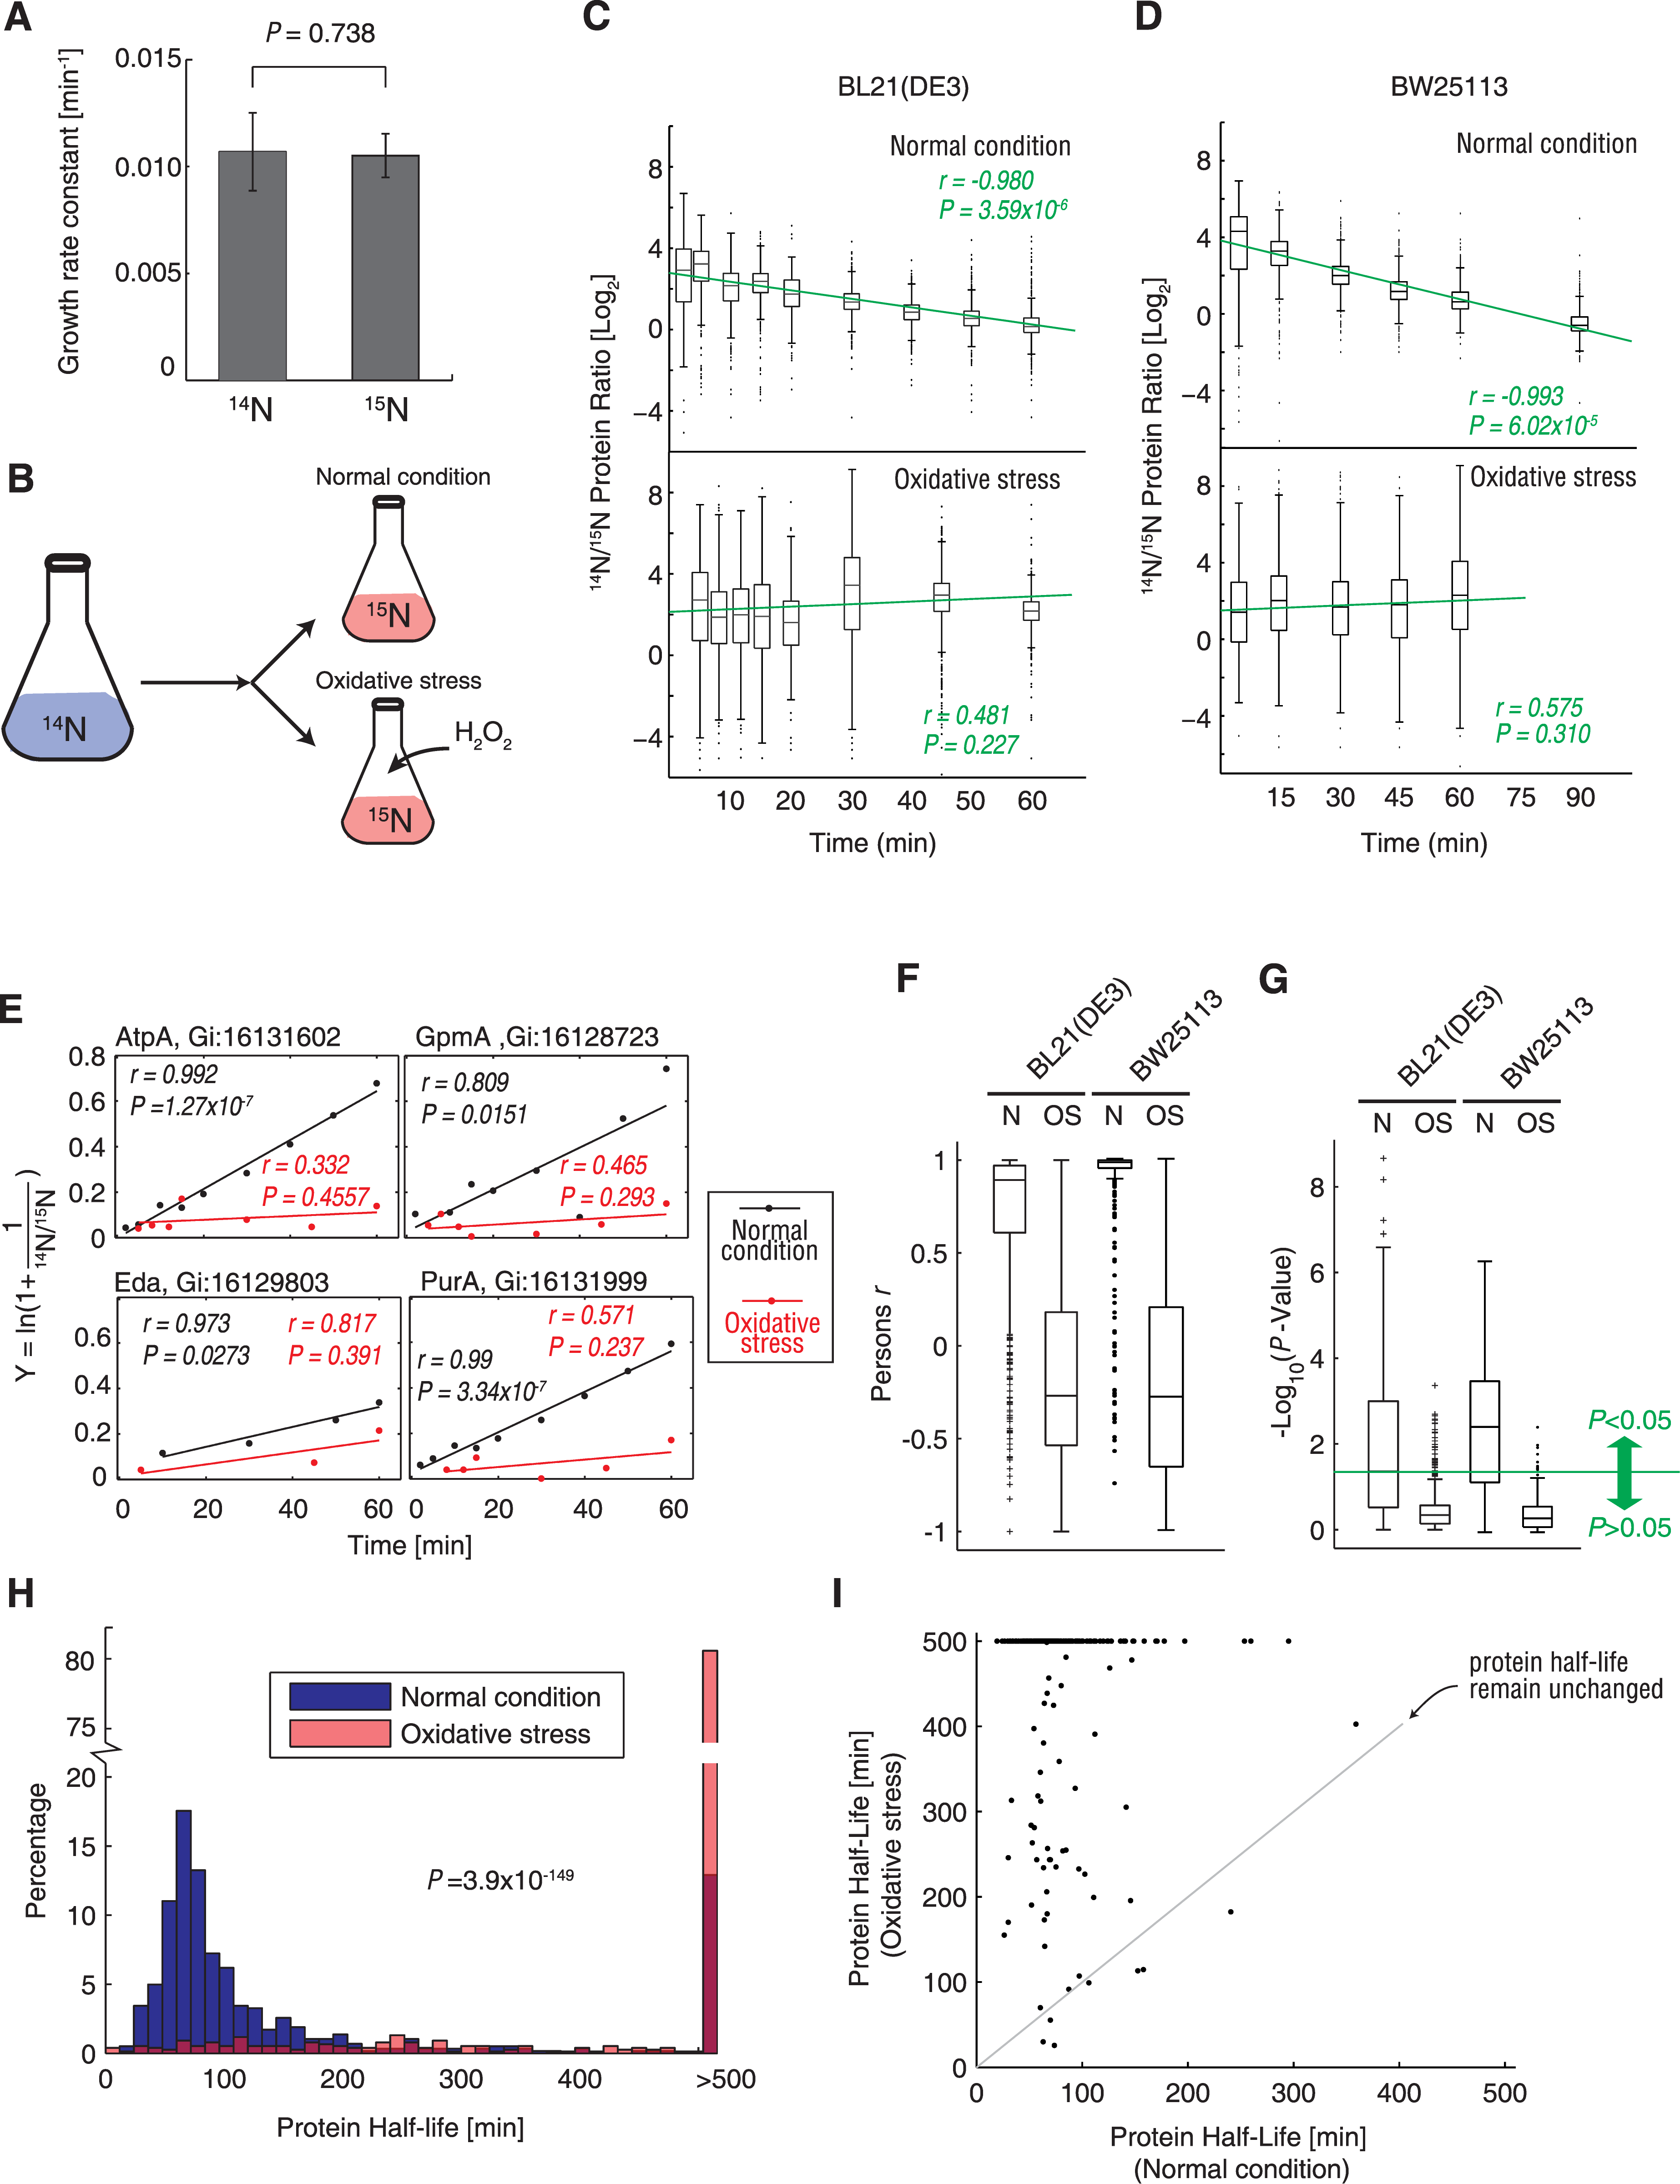 Protein synthesis measurement under normal condition and oxidative stress using <sup>15</sup>N metabolic labeling and mass spectrometry.